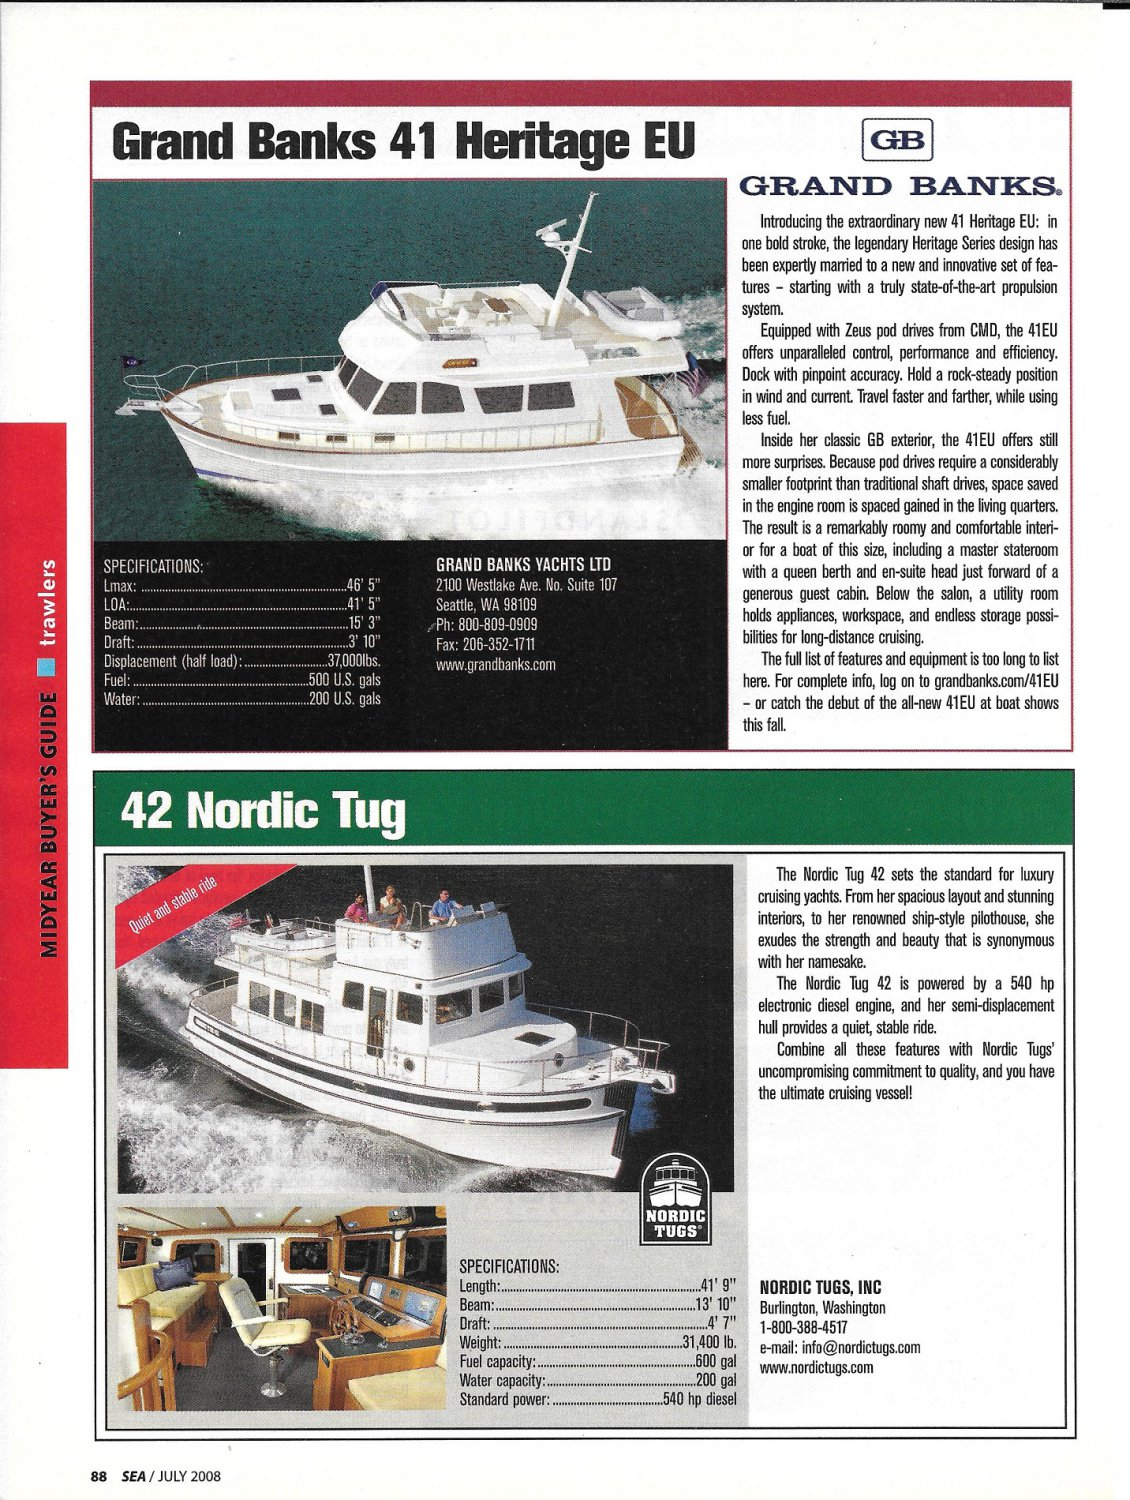 2008 Grand Banks 41 & Nordic Tug 42 New Boats Review-Specs & Photos